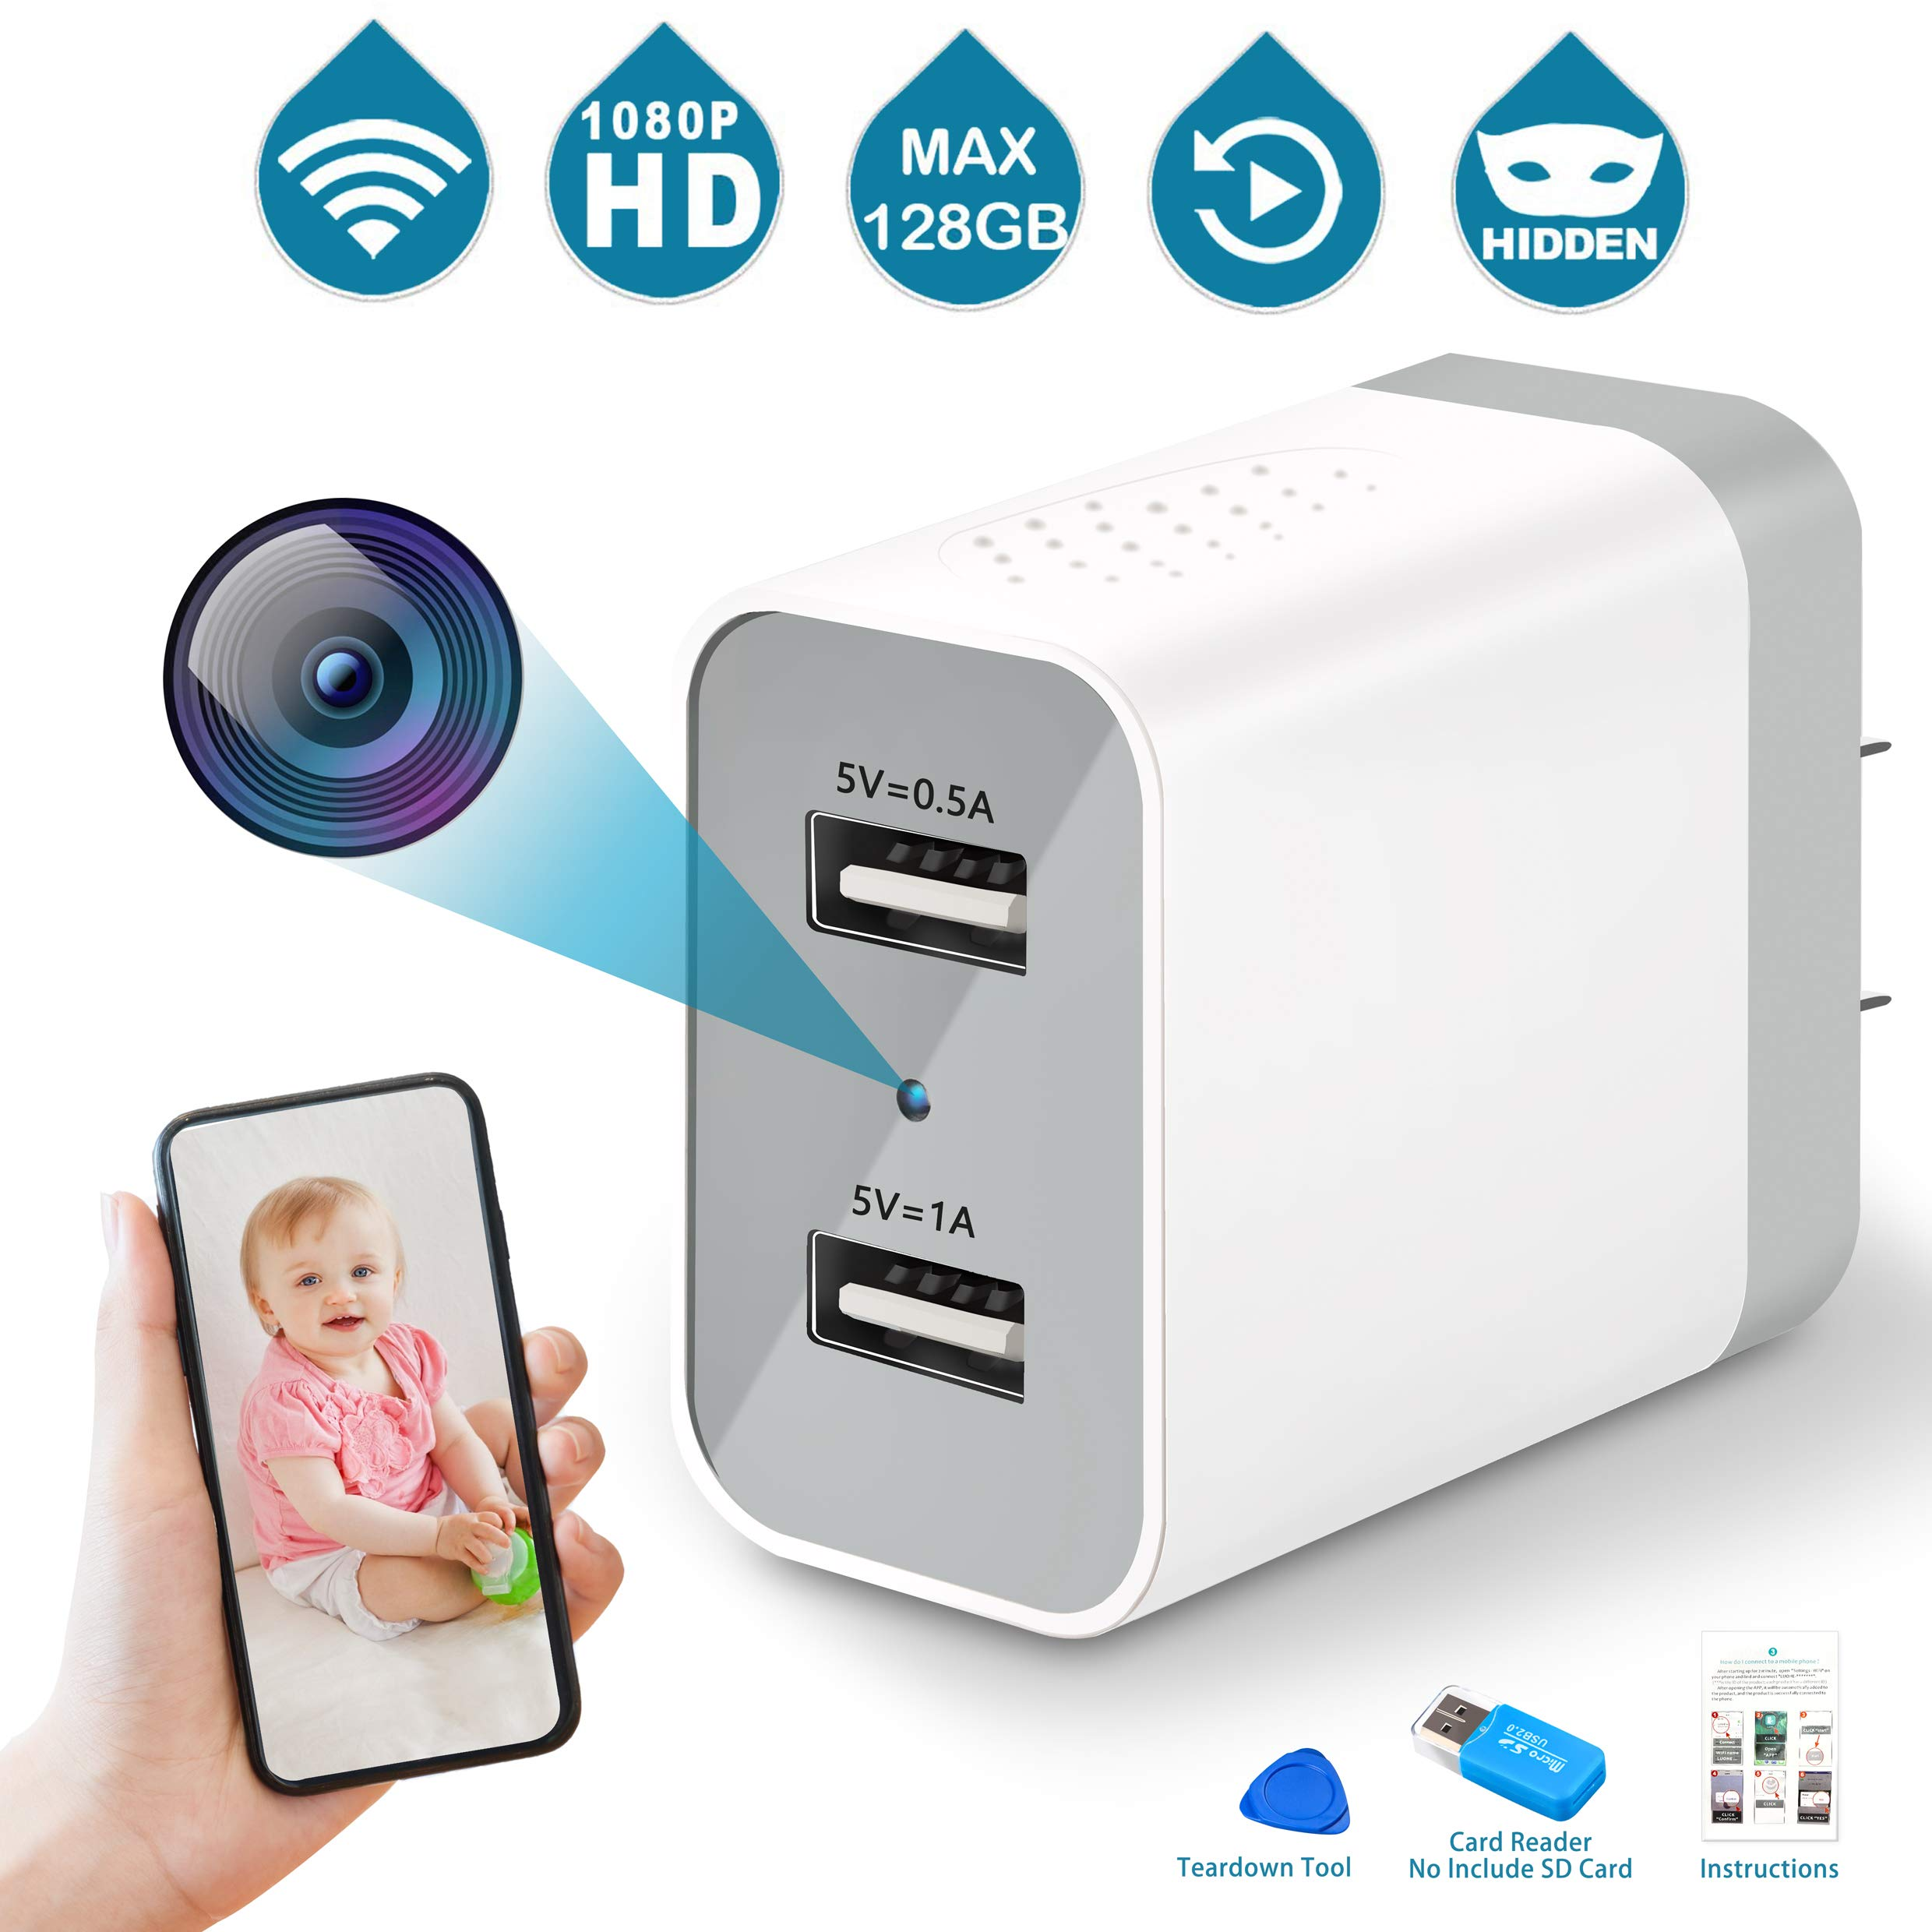 Spy Camera Wireless Hidden, 2019 Upgraded Version WiFi Camera 1080P HD Hidden Camera Wall Charger Nanny Cam with Remote Viewing & Motion Detection for Home, Office, Store - White by Aynone